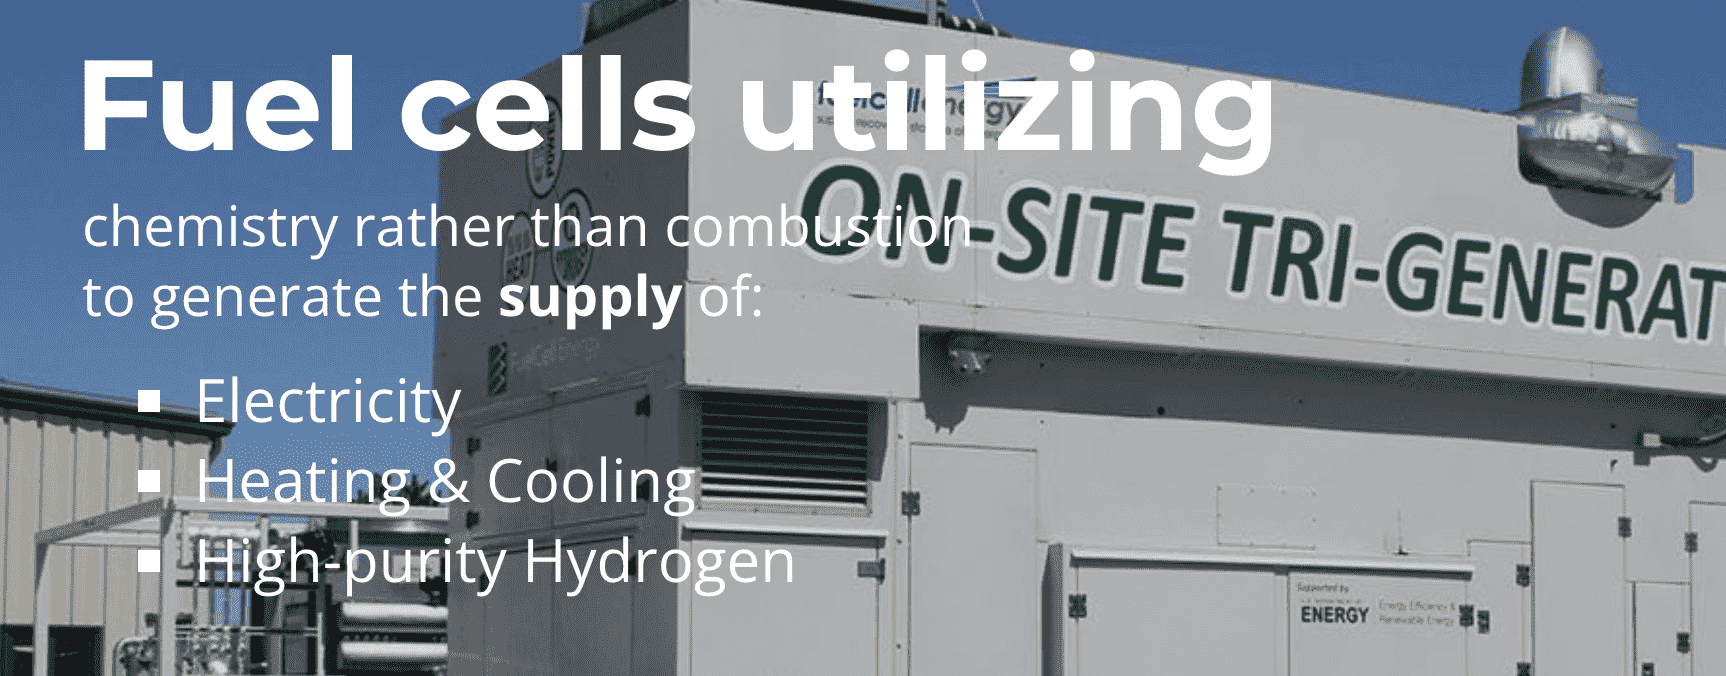 fuelcell energy prediction